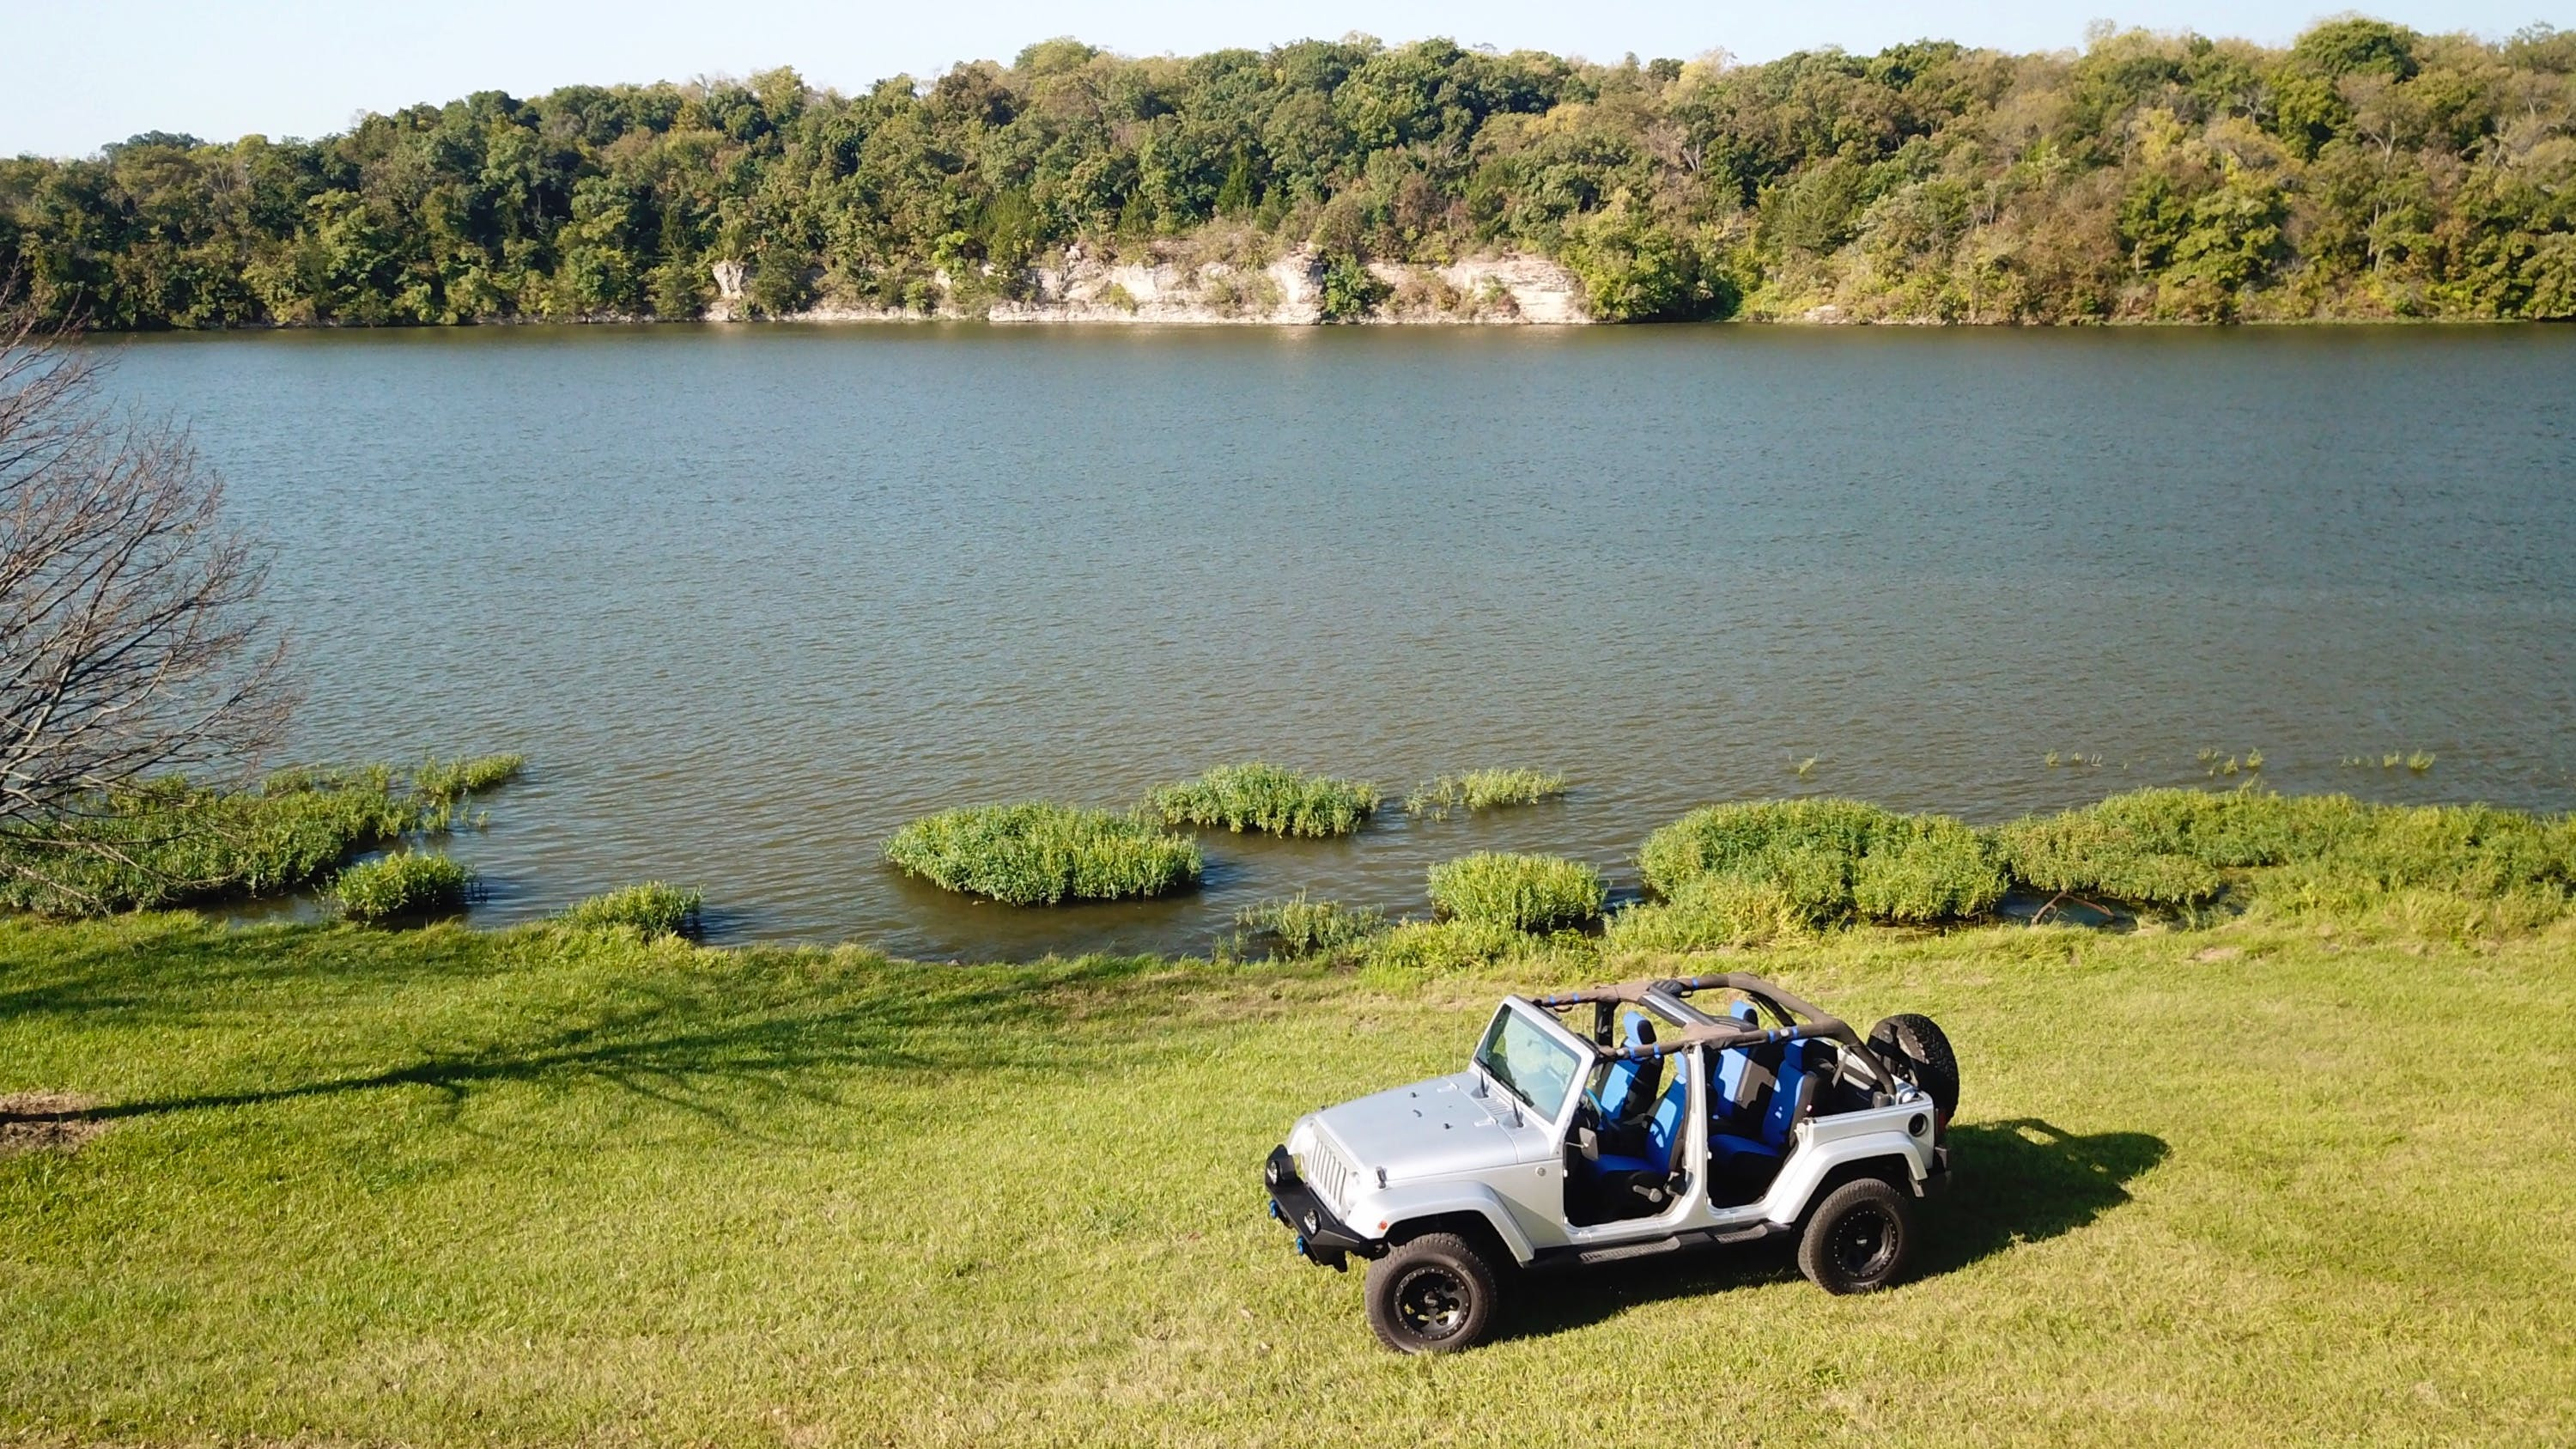 Free stock photo of lake, outdoors, jeep, aerial shot